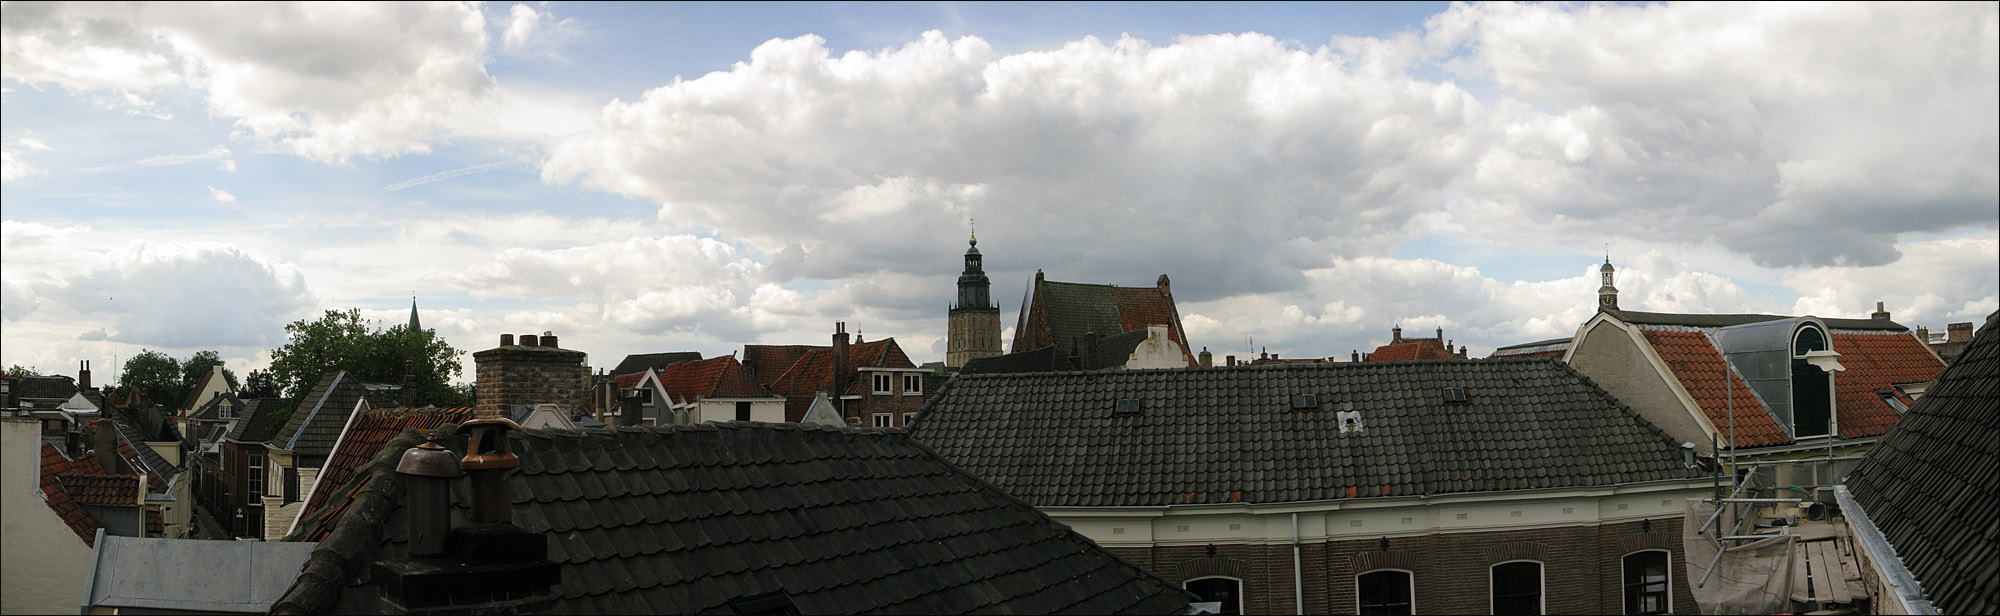 Panorama: Roofs of Zutphen